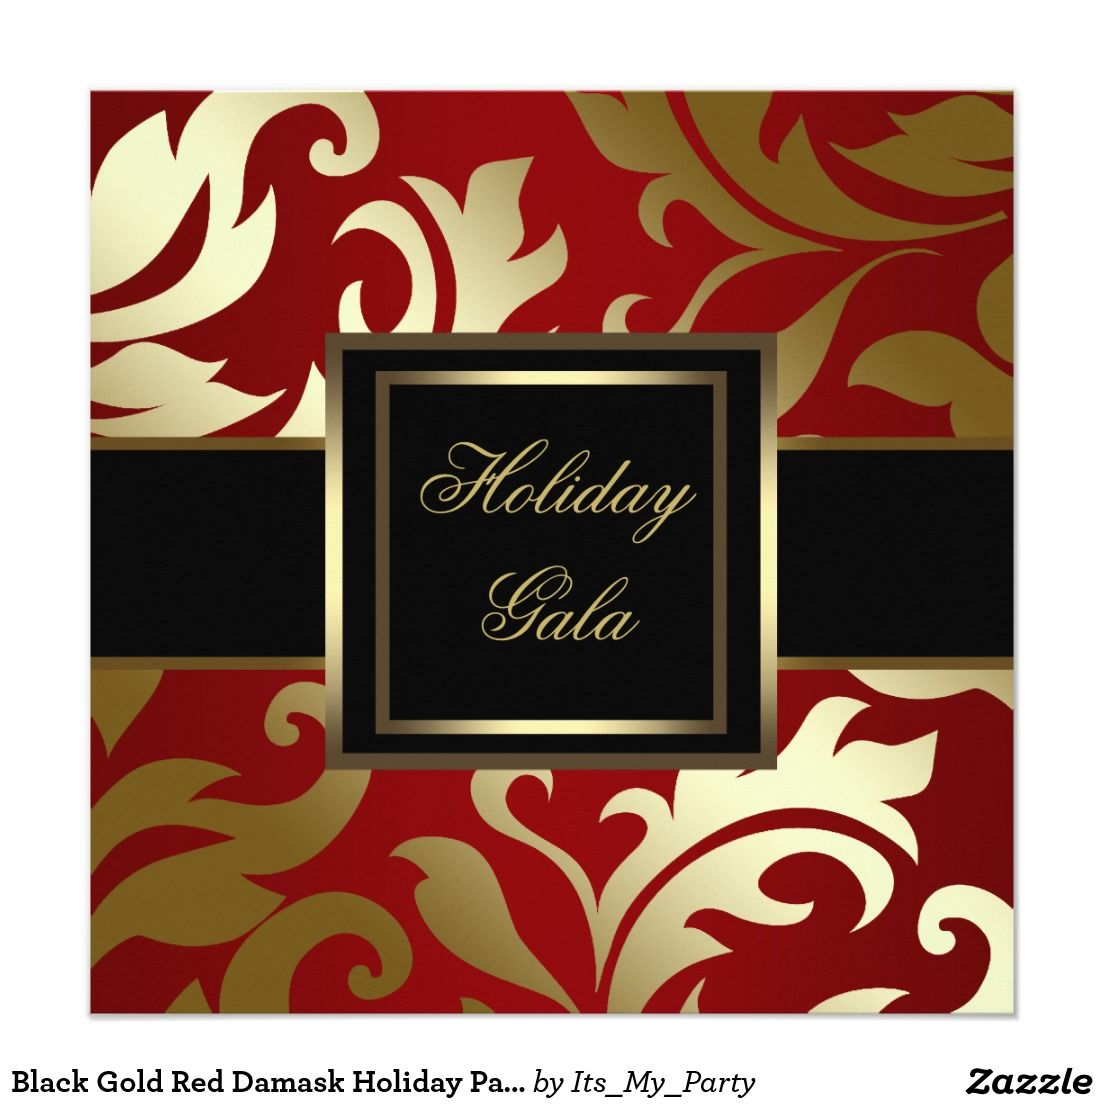 Black Gold Red Damask Holiday Party Invitations | Holiday party ...